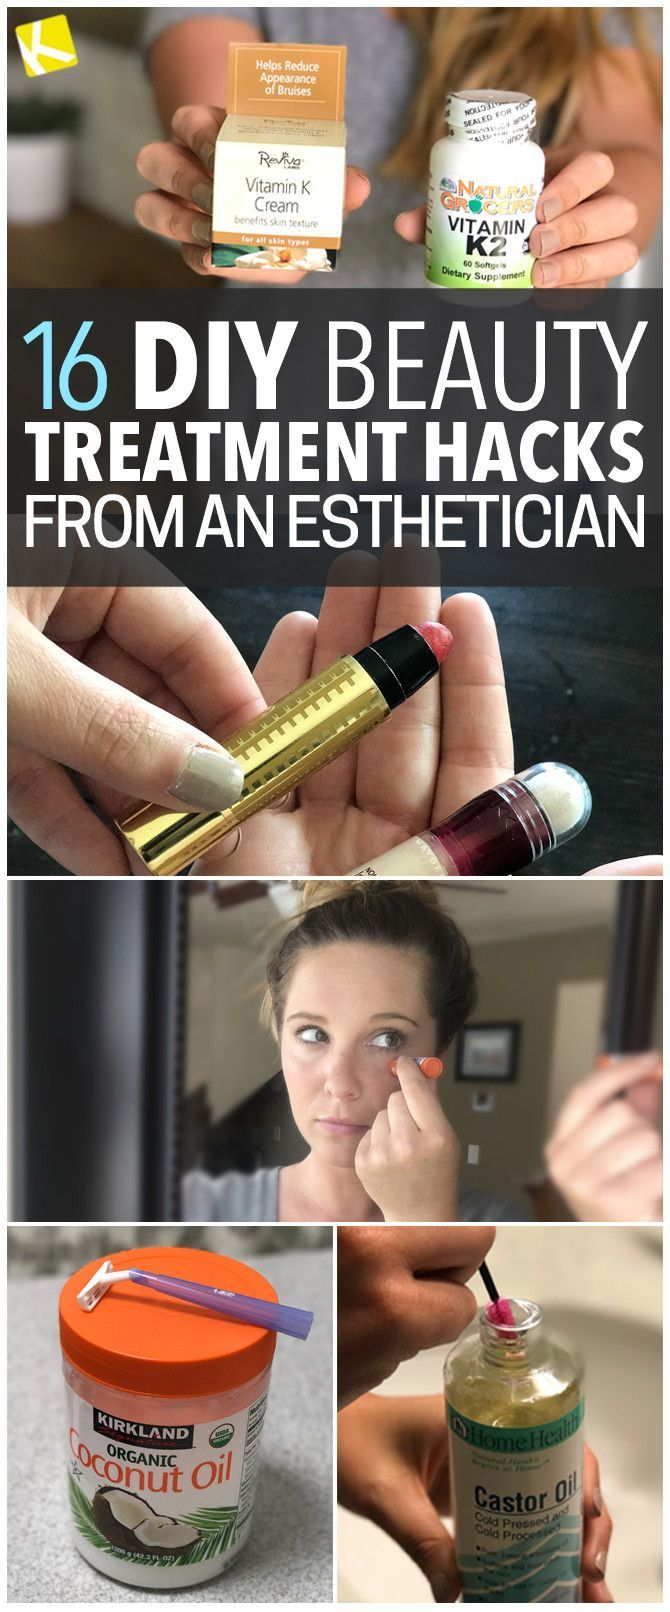 15 DIY Beauty Treatment Hacks from an Esthetician - The Krazy Coupon Lady